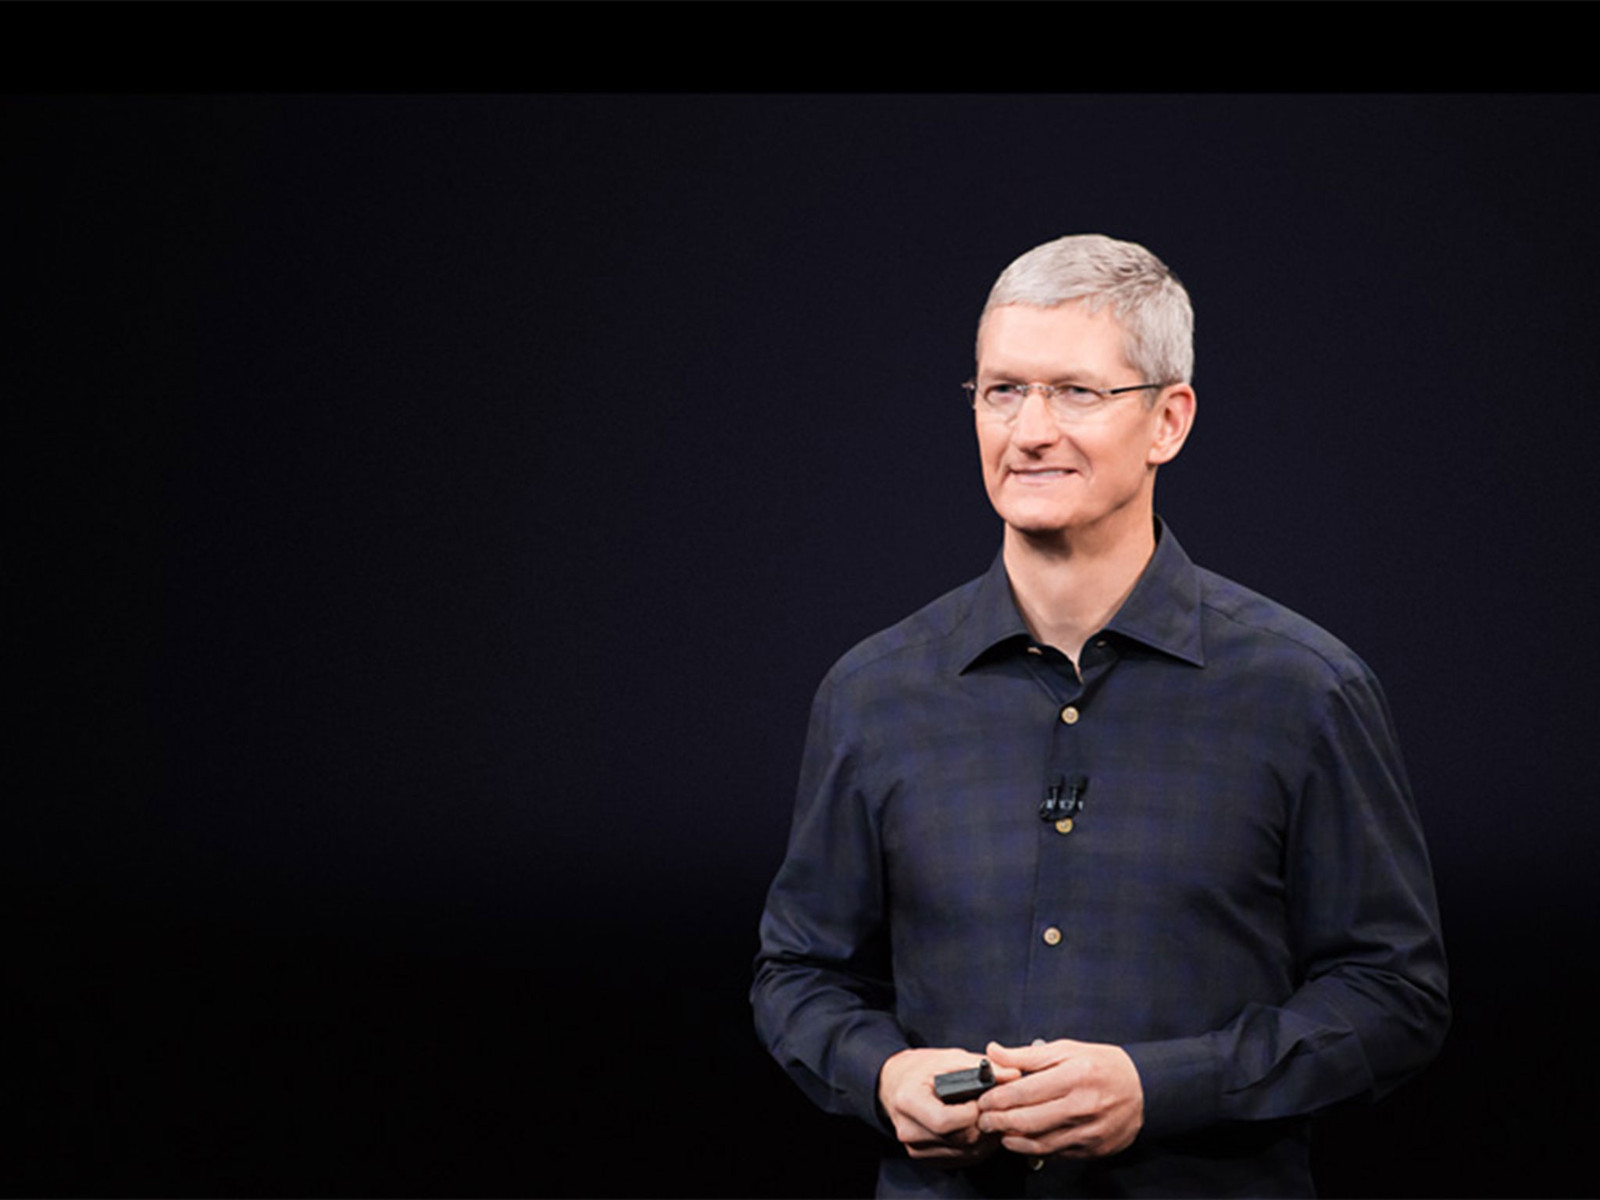 1600x1200 - Tim Cook Wallpapers 8